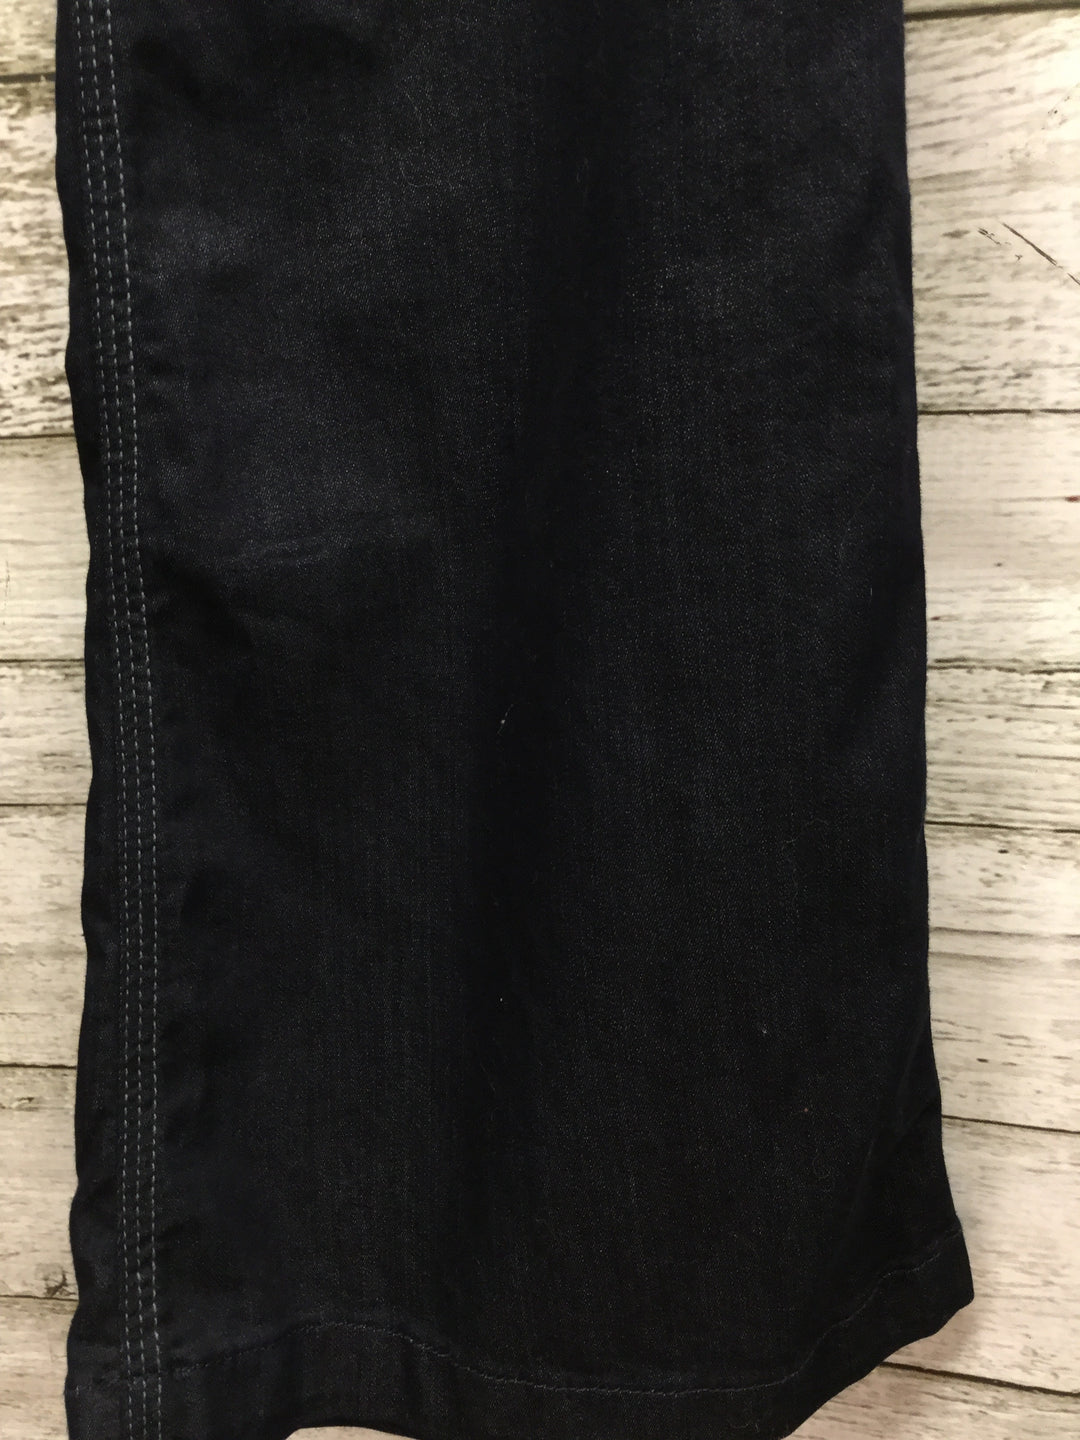 Photo #2 - BRAND: SEVEN FOR ALL MANKIND , STYLE: JEANS , COLOR: DENIM , SIZE: 6 , SKU: 127-4169-27785, , THESE JEANS ARE GENTLY USED AND IN GOOD CONDITION.